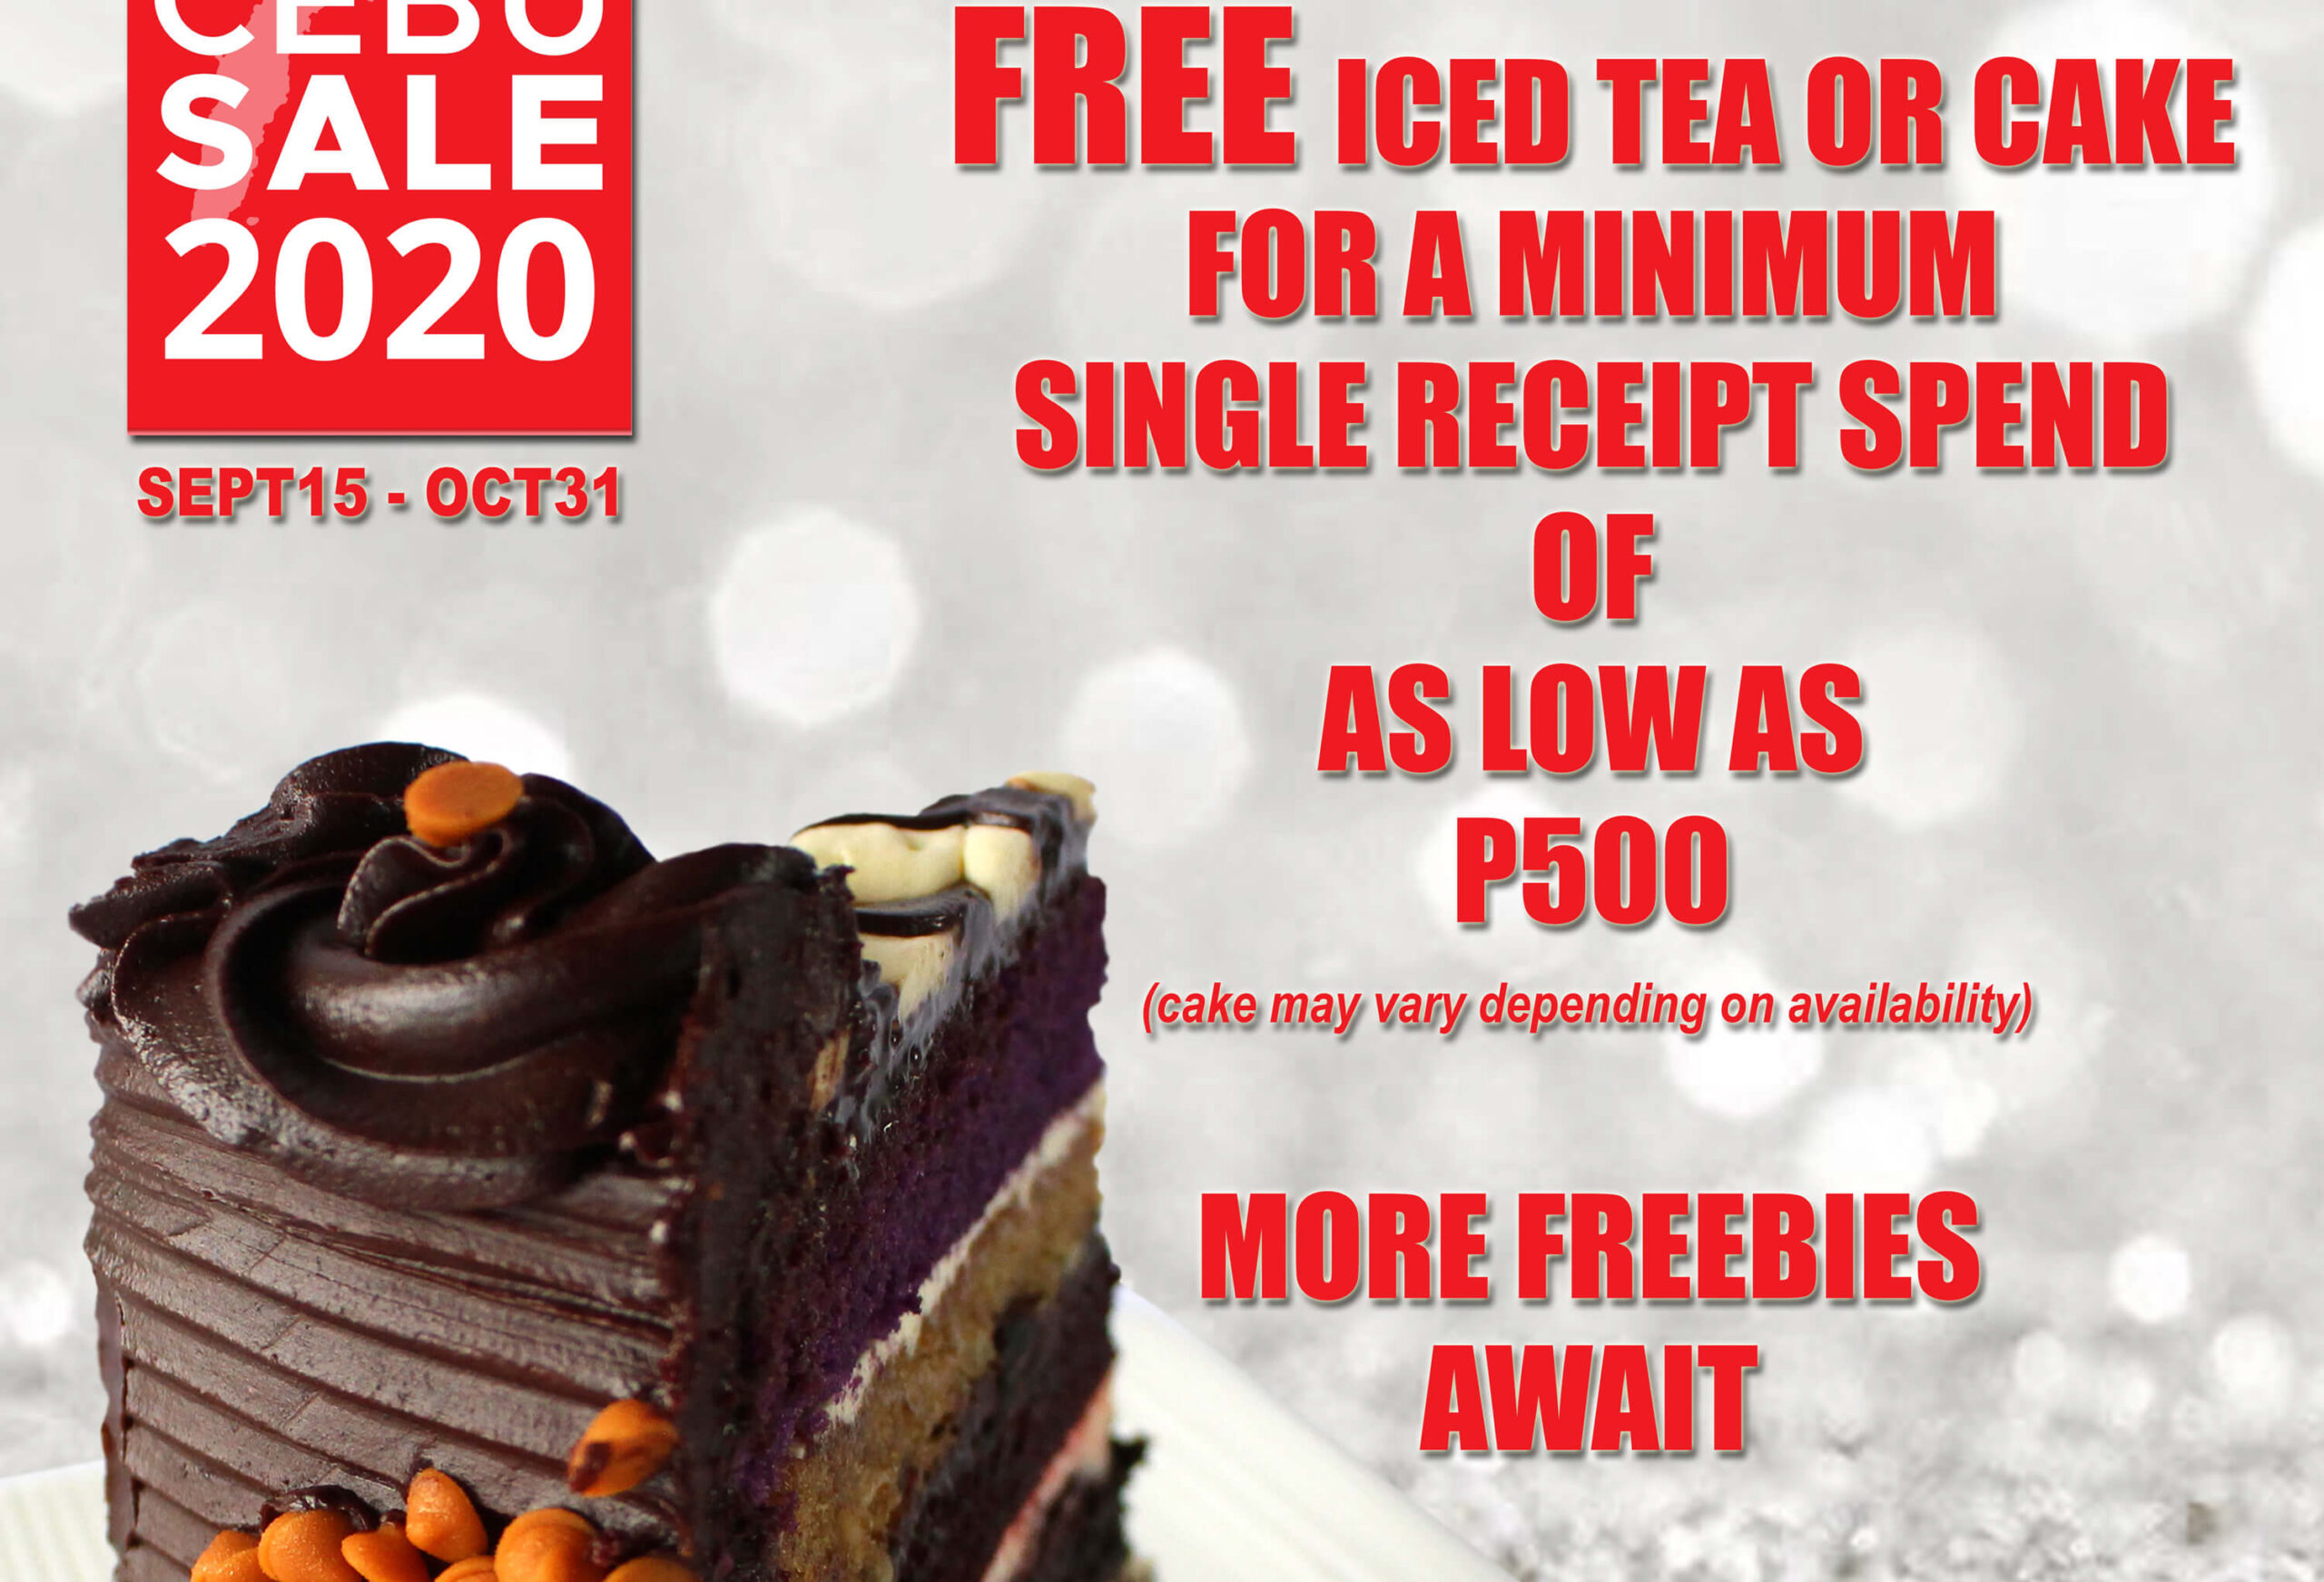 Dessert Factory offers free iced tea or cake